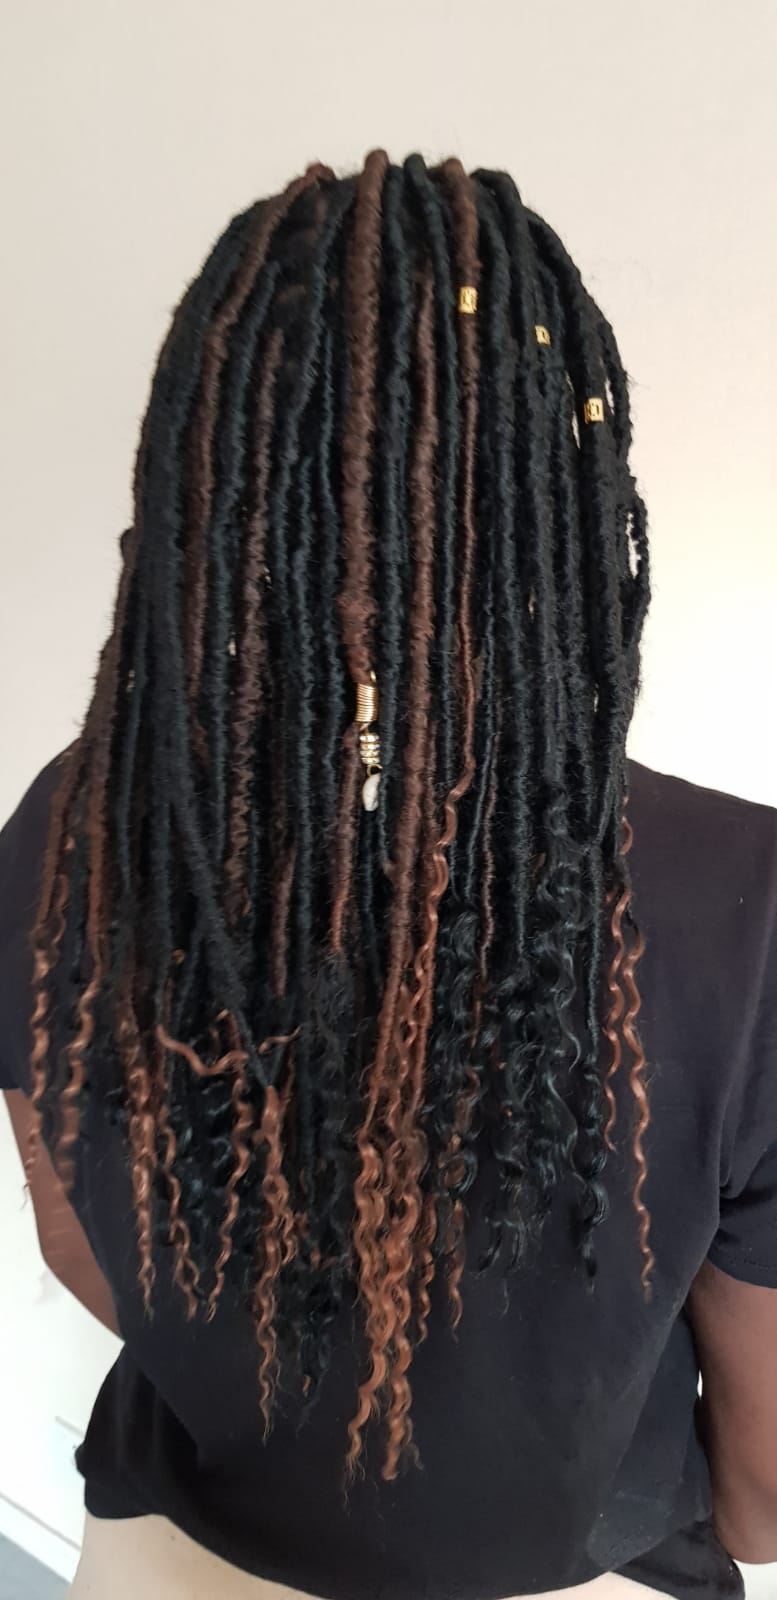 salon de coiffure afro tresse tresses box braids crochet braids vanilles tissages paris 75 77 78 91 92 93 94 95 SSJXJLUW